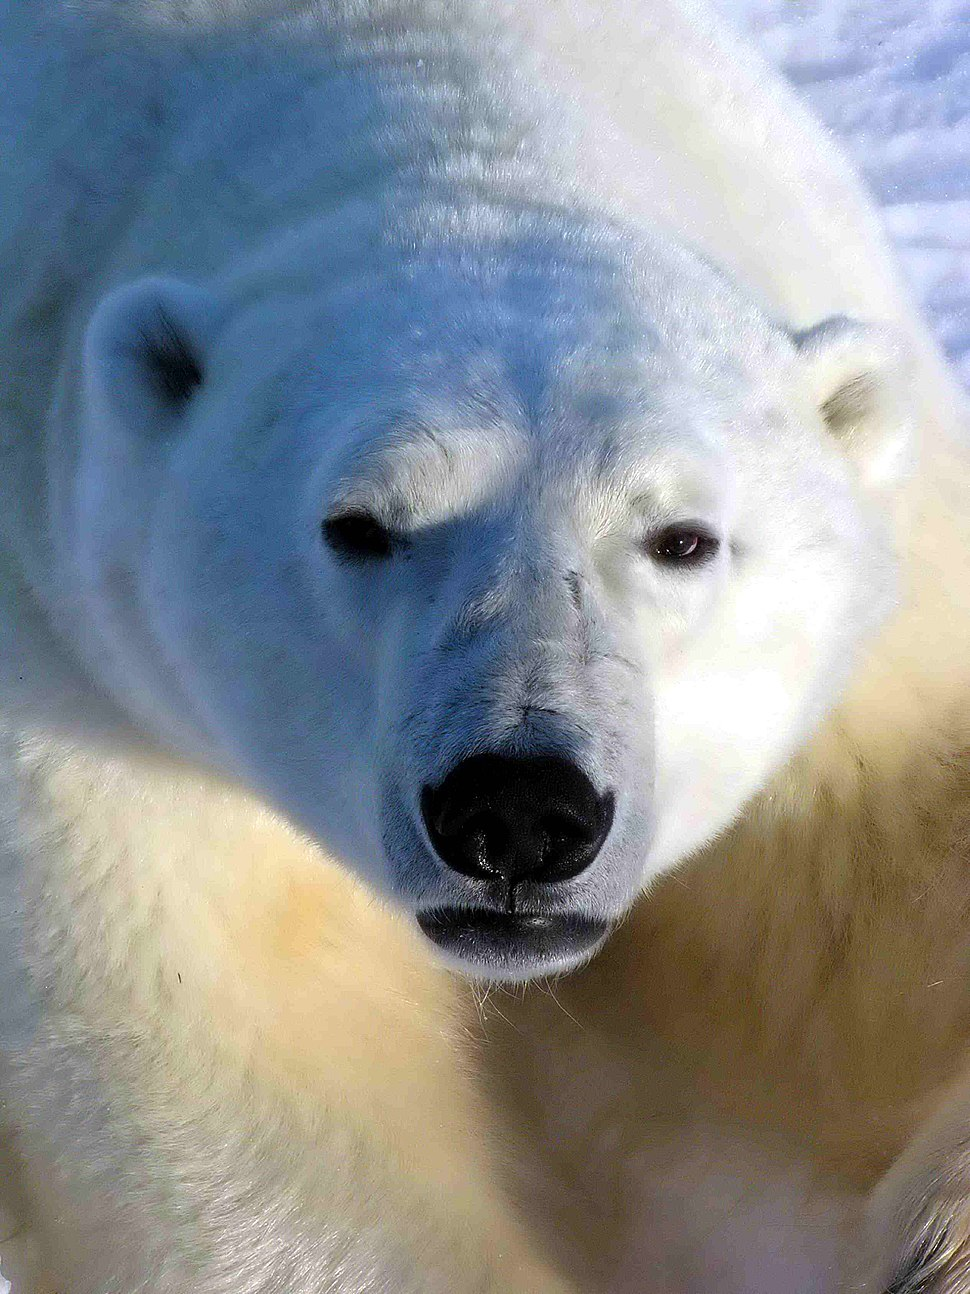 A bear with white fur and black eyes